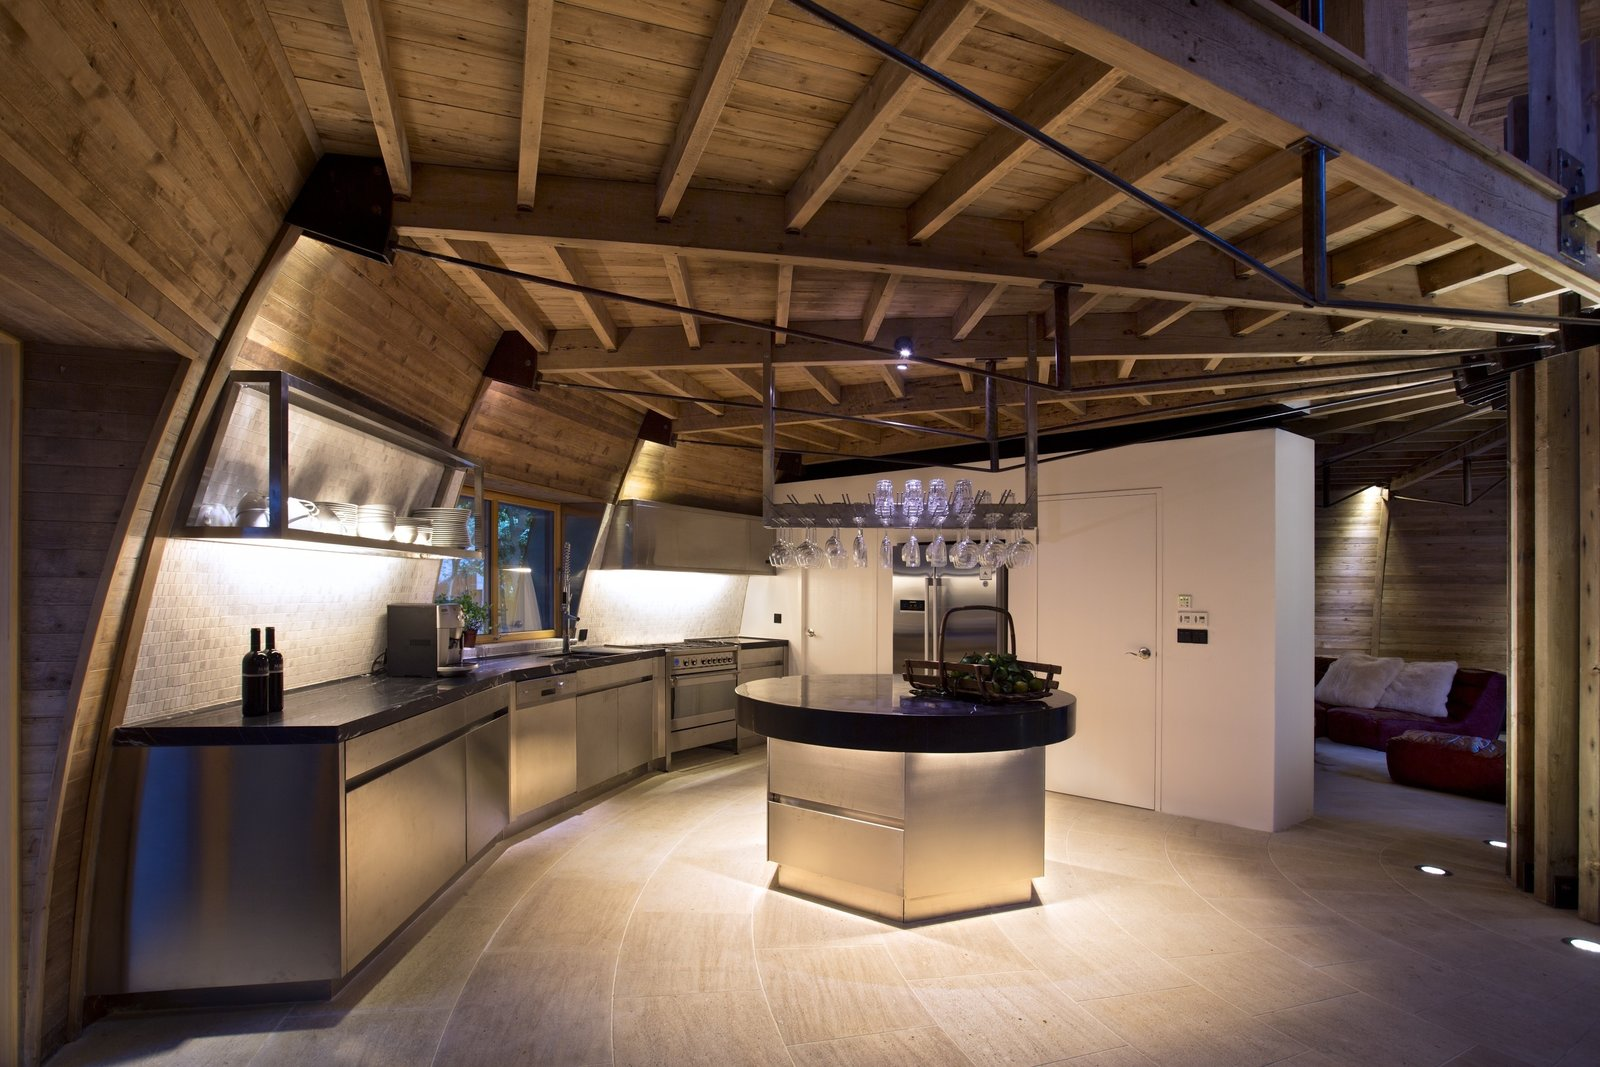 A full-service kitchen is nestled under the dome's loft. Clad in stainless steel, its custom-made cabinets match the appliances and the wine glass holder that hangs over the island. The kitchen's black marble countertops echo the surface of the dining table.  Photo 5 of 8 in A British Furniture Brand Built This Round Village in China